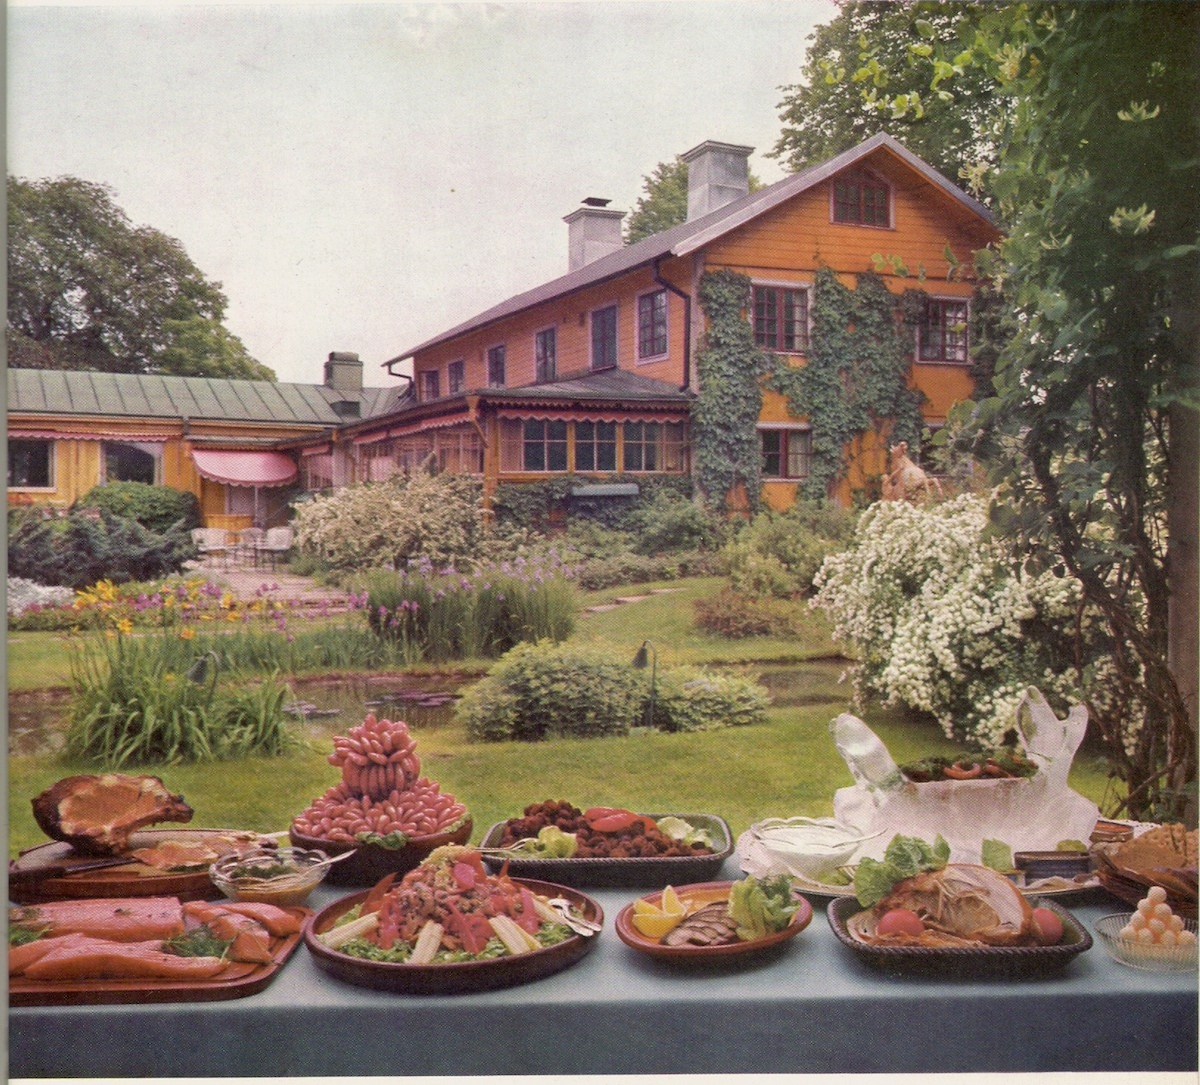 """Stallmastaregarden Restaurant, Stockholm, 1958... And now I know the true meaning of """"Stockholm Syndrome"""". Life Picture Cookbook"""